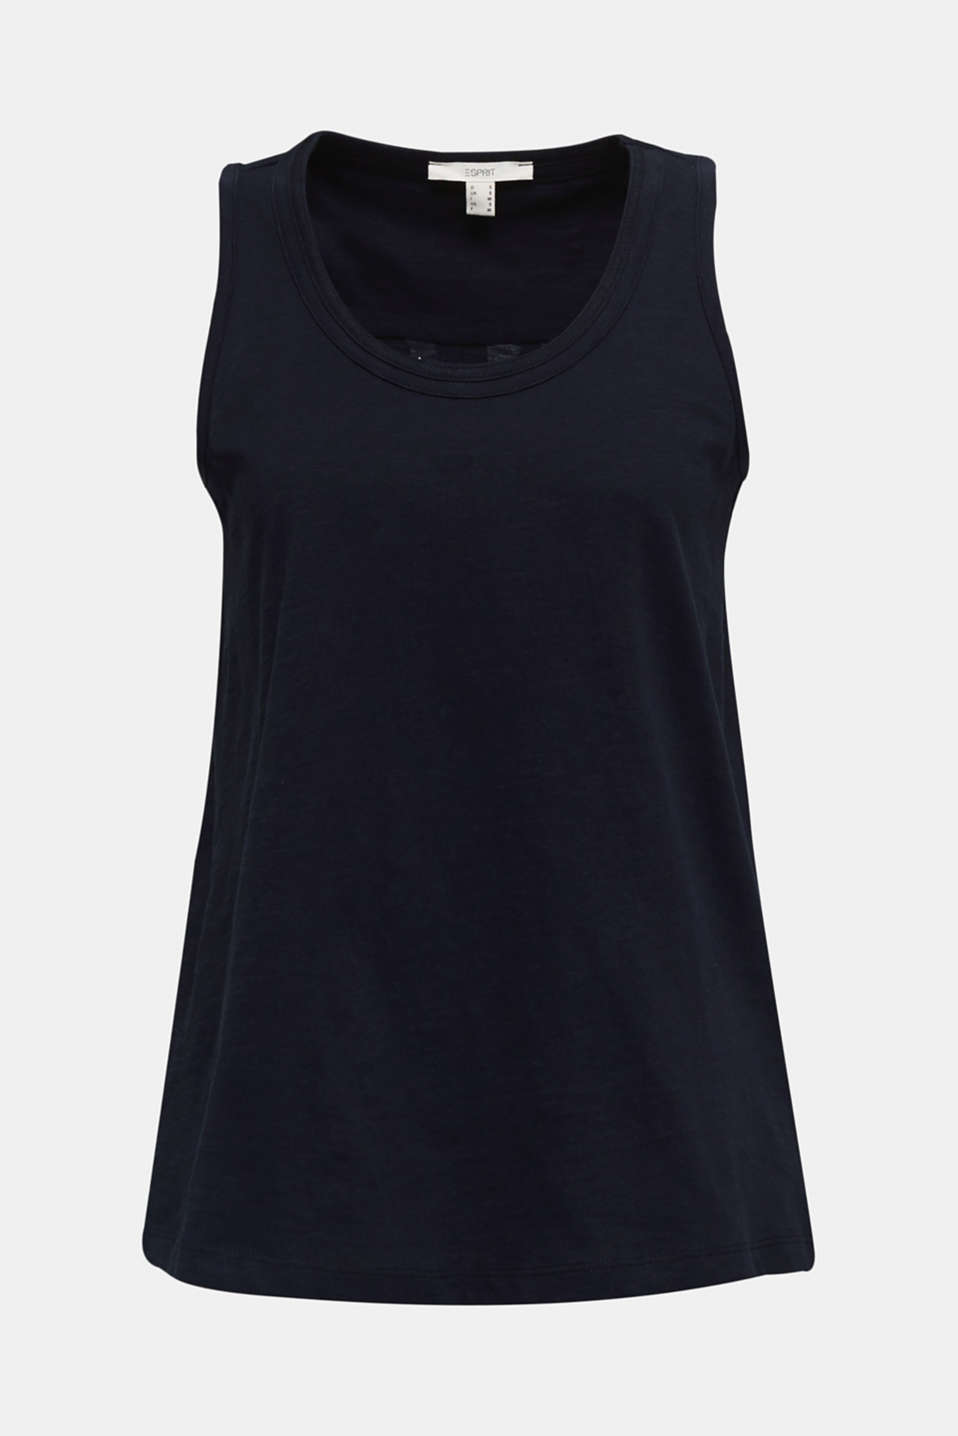 A-line sleeveless top made of 100% organic cotton, BLACK, detail image number 7